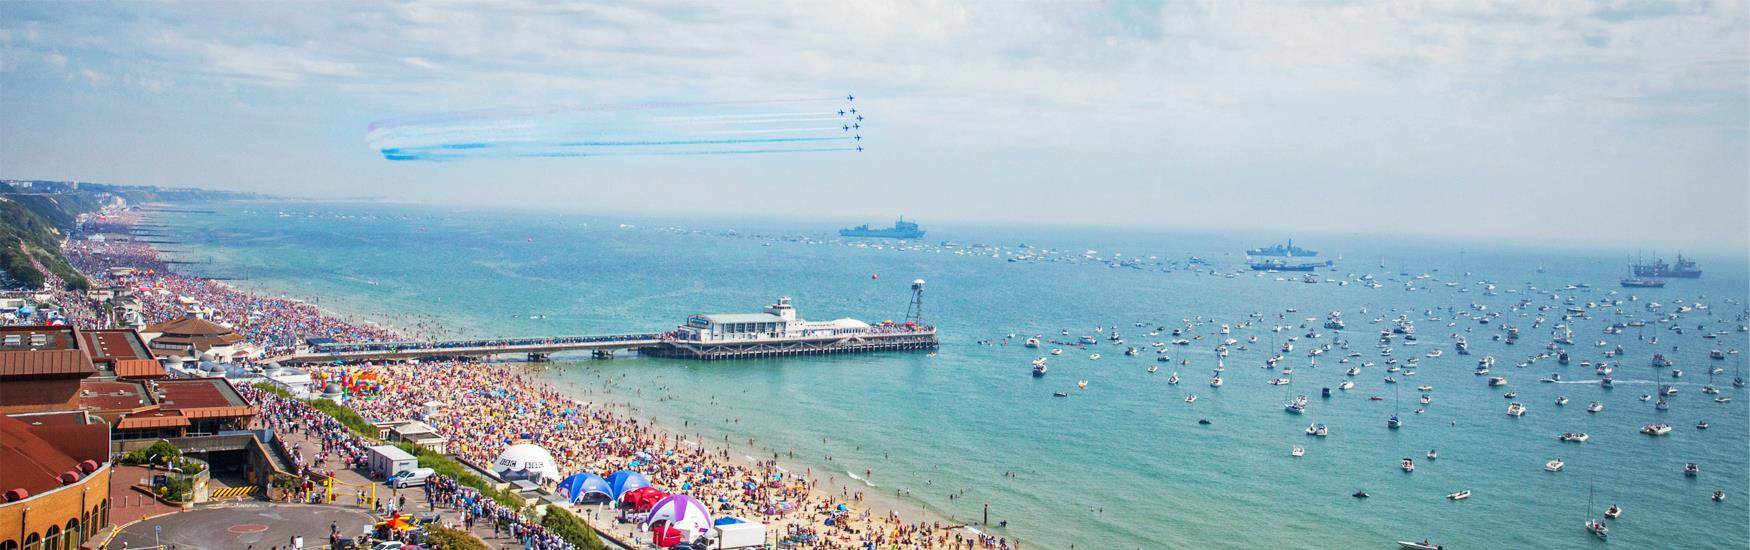 Great events in Bournemouth all year round! Visit the famous Bournemouth Air Festival